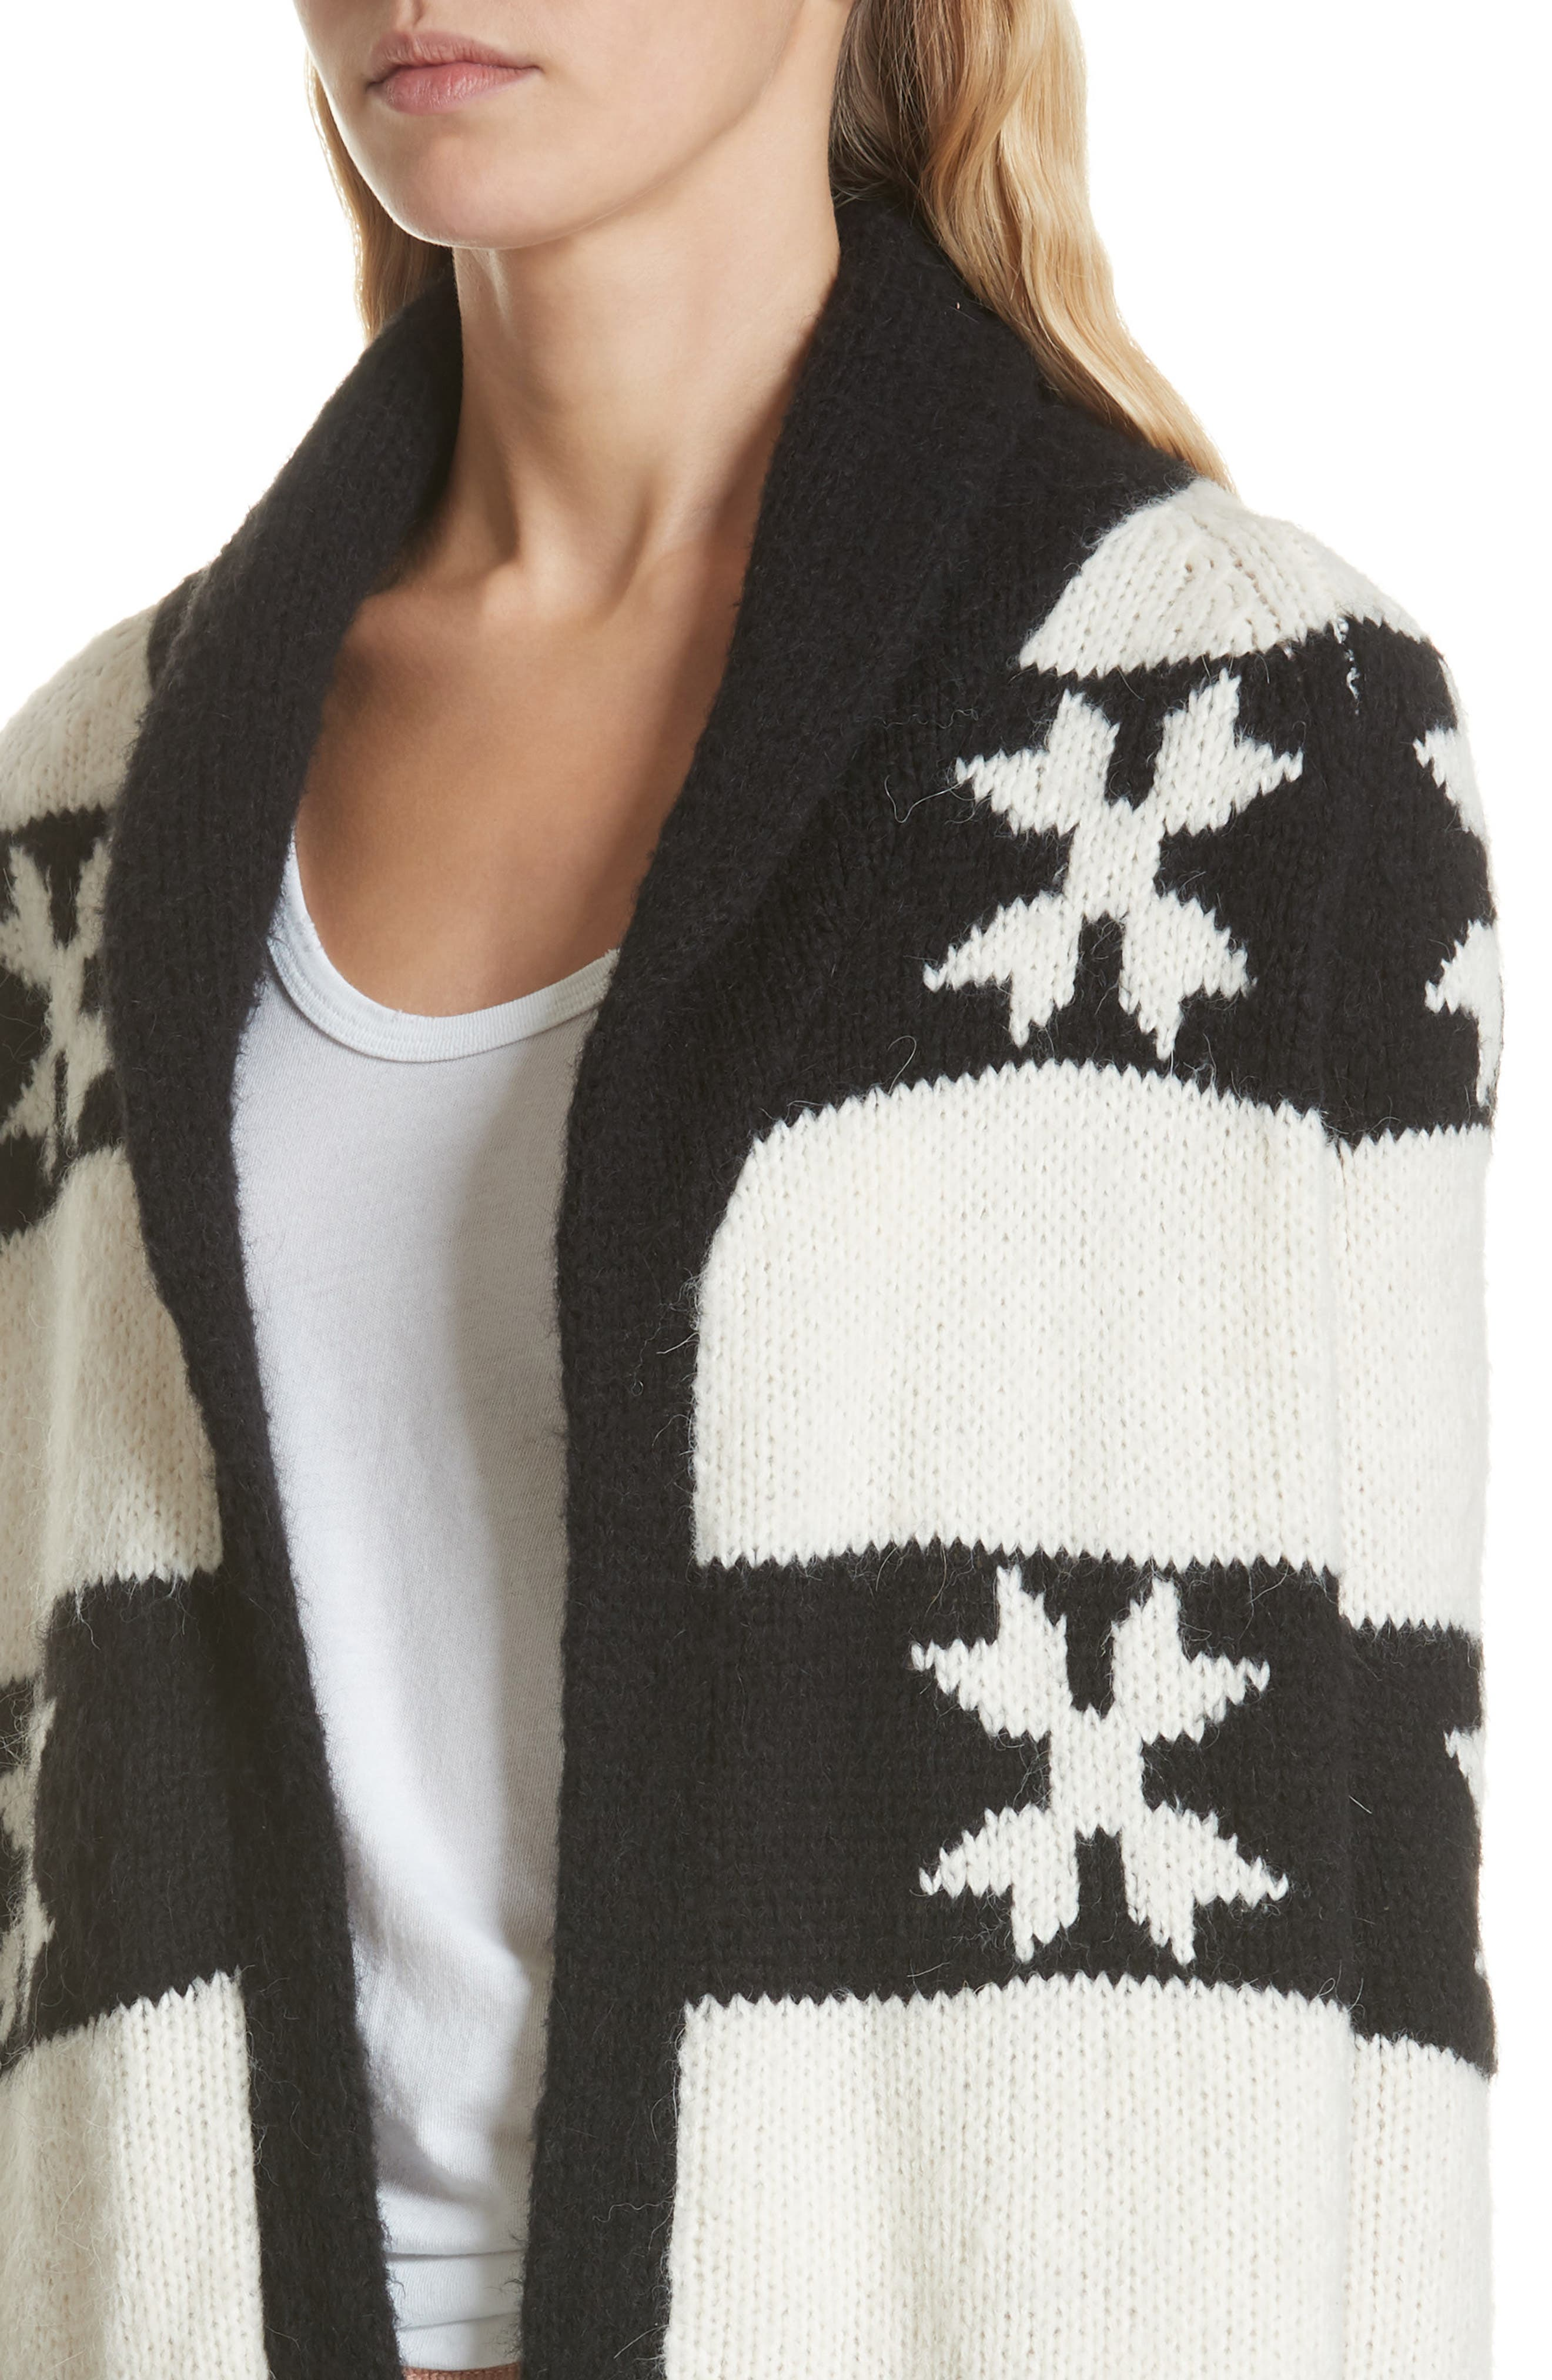 Starflower Cardigan,                             Alternate thumbnail 4, color,                             CREAM AND BLACK